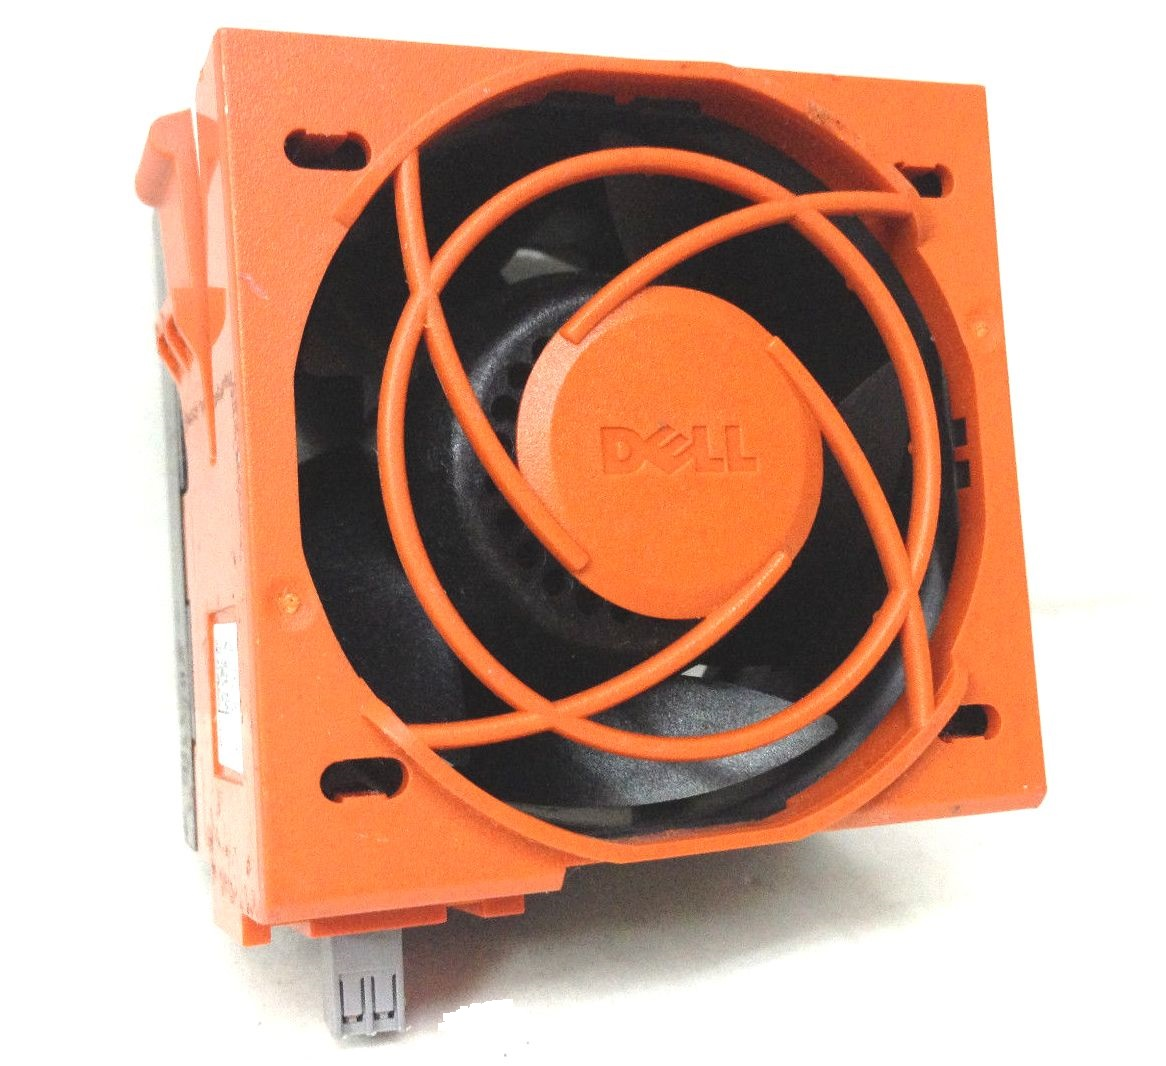 Dell PowerEdge R715 R810 Redundant Cooling Fan (419VC)